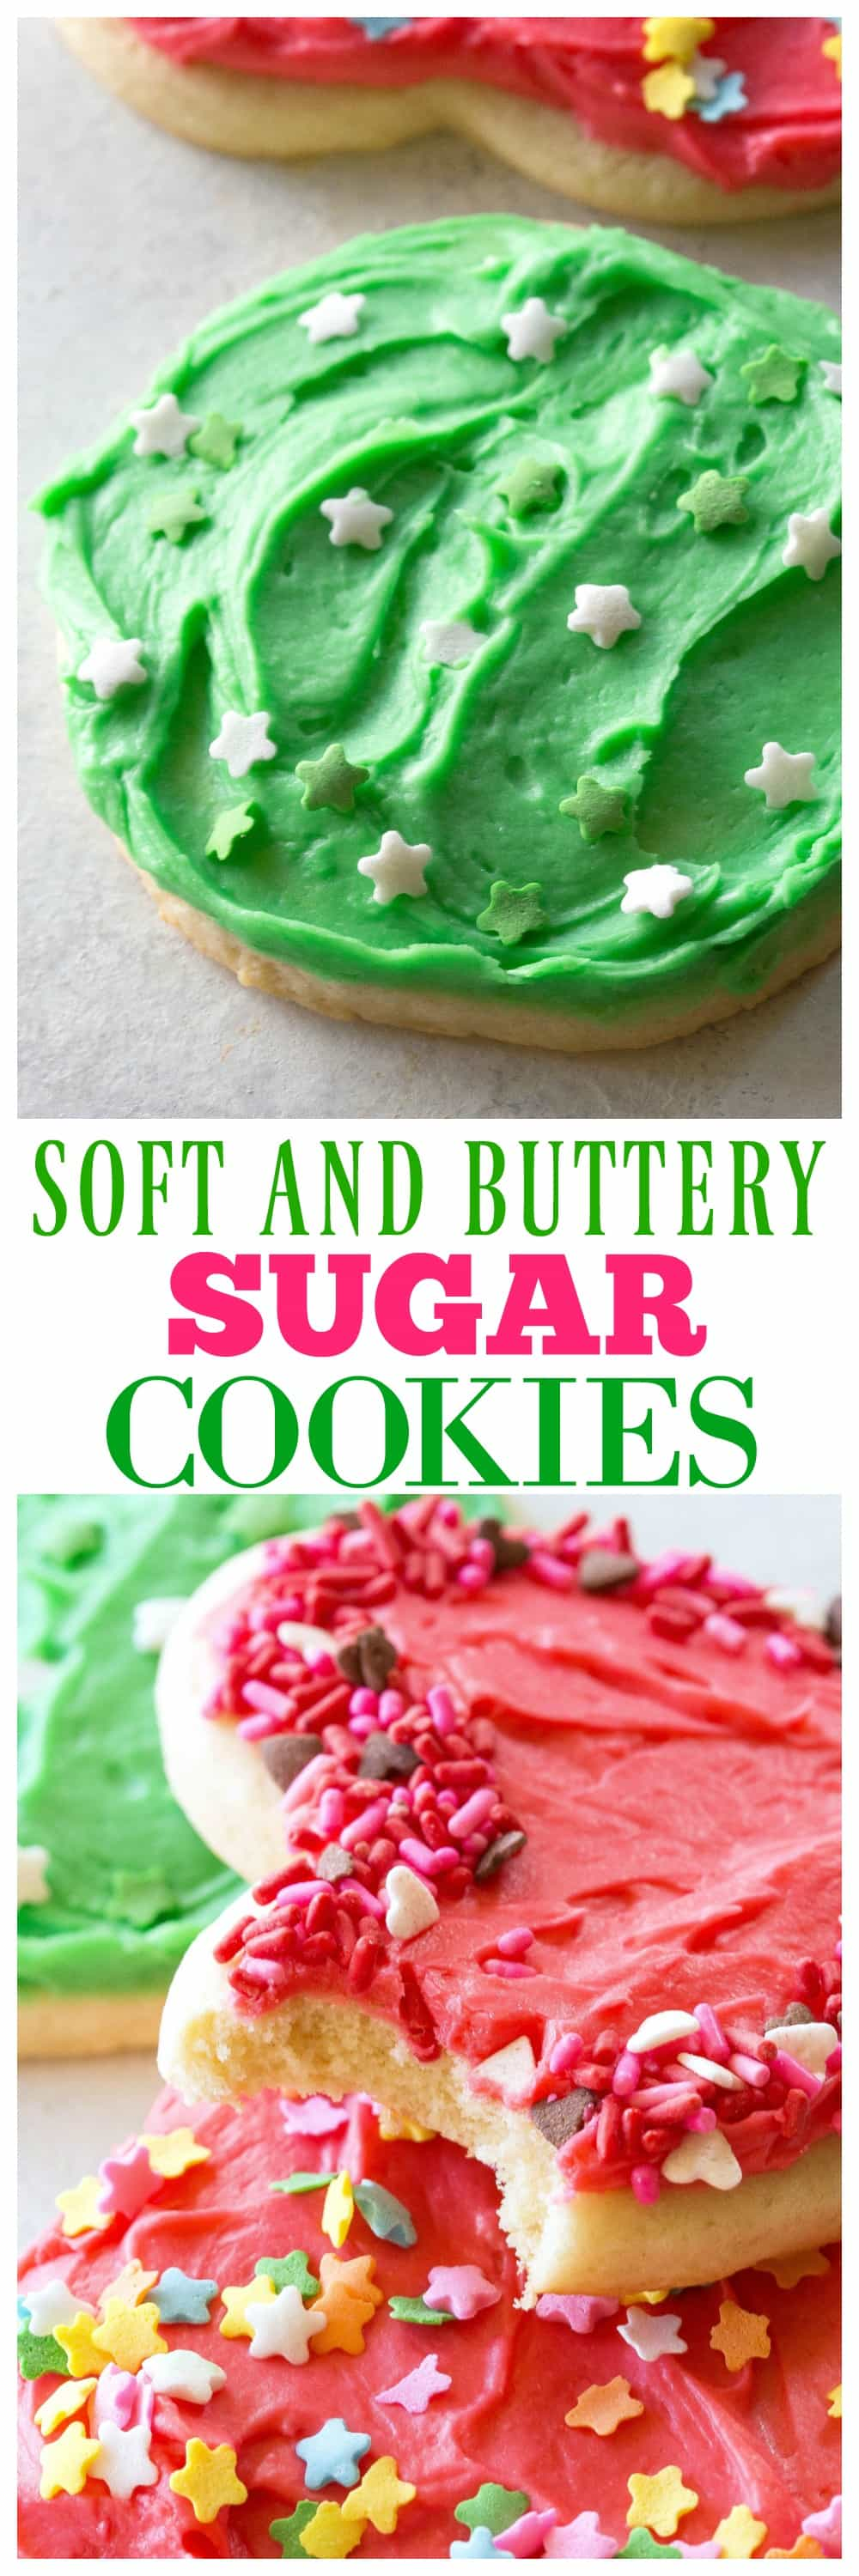 These Sugar Cookies are soft, buttery and great for cut-out shapes! #soft #sugar #cookies #cookie #recipe #dessert